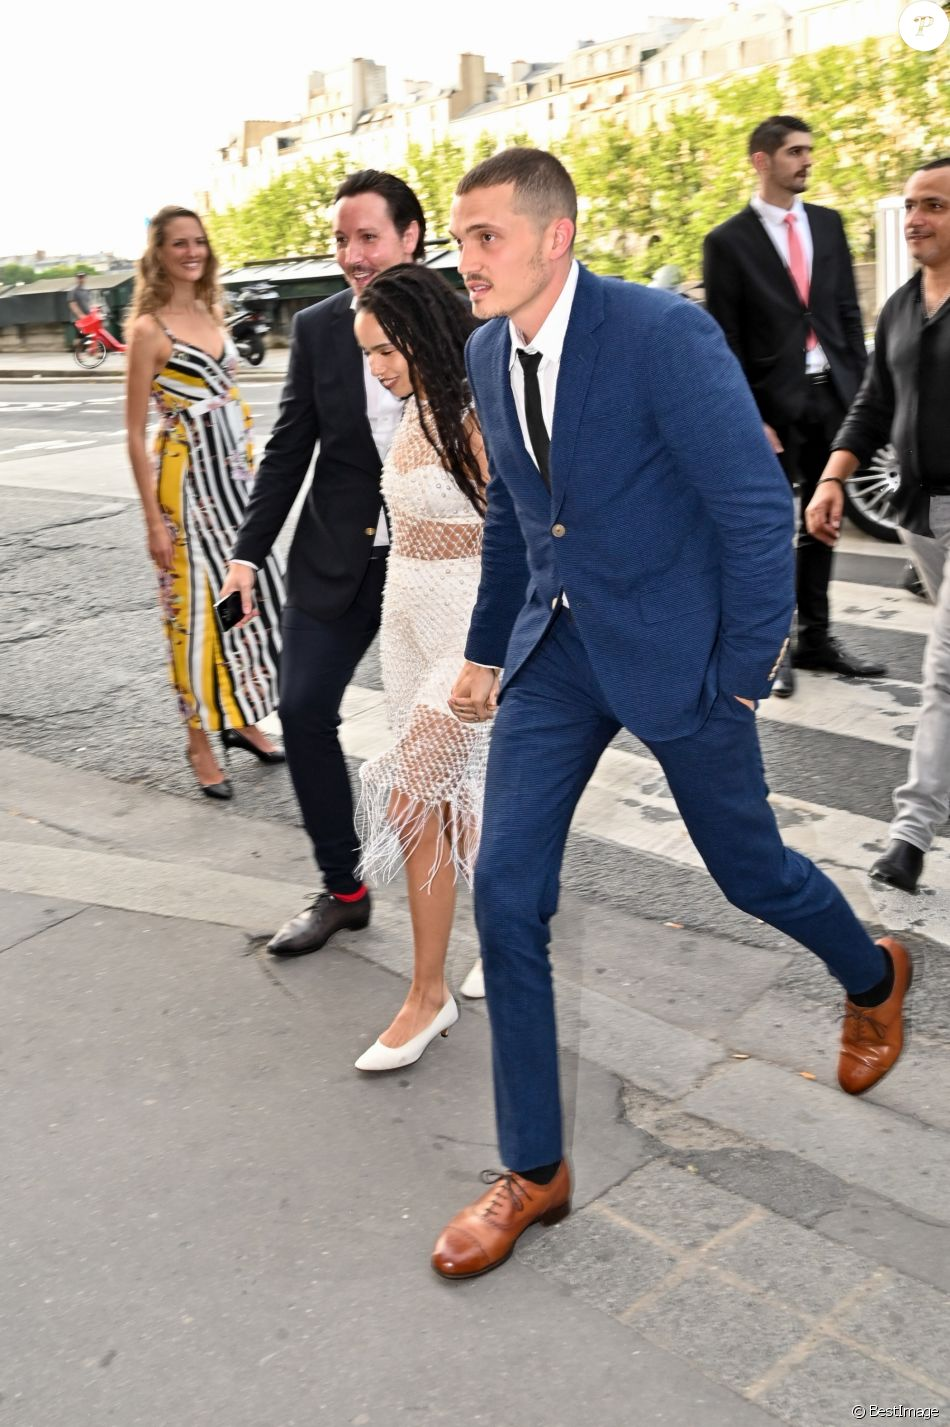 Zoe Kravitz et son mari Karl Glusman - Les invités de Zoe Kravitz et de son mari Karl Glusman arrivent au restaurant Lapérouse à Paris pour leur Pre Wedding Party le 28 juin 2019.